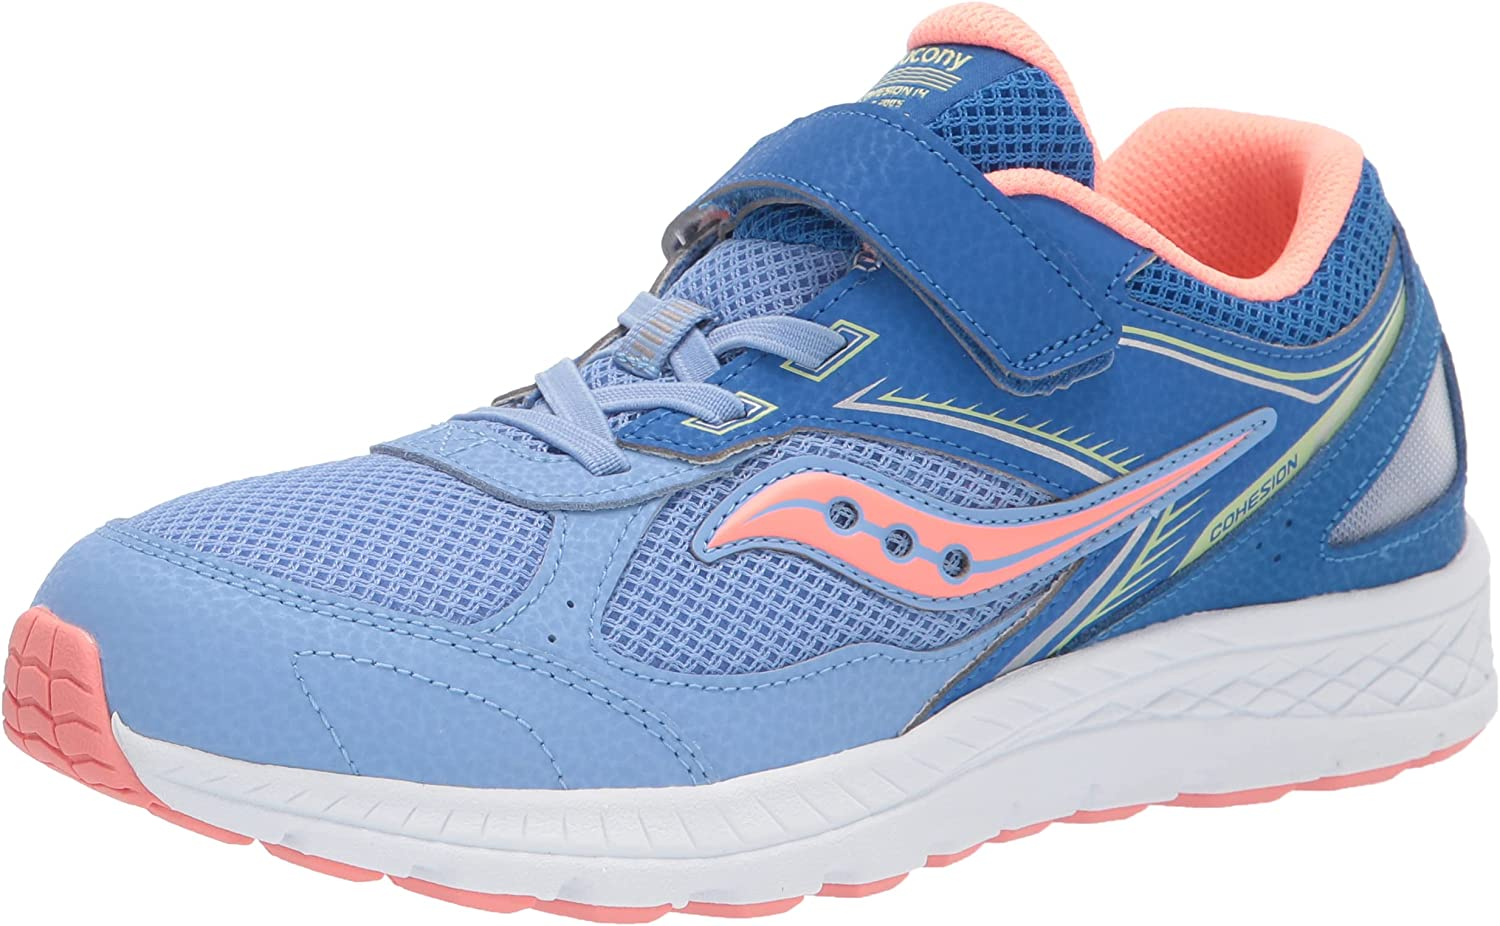 Max 58% OFF Saucony Cohesion 14 Alternative Max 76% OFF Closure Blue Running Shoe Coral